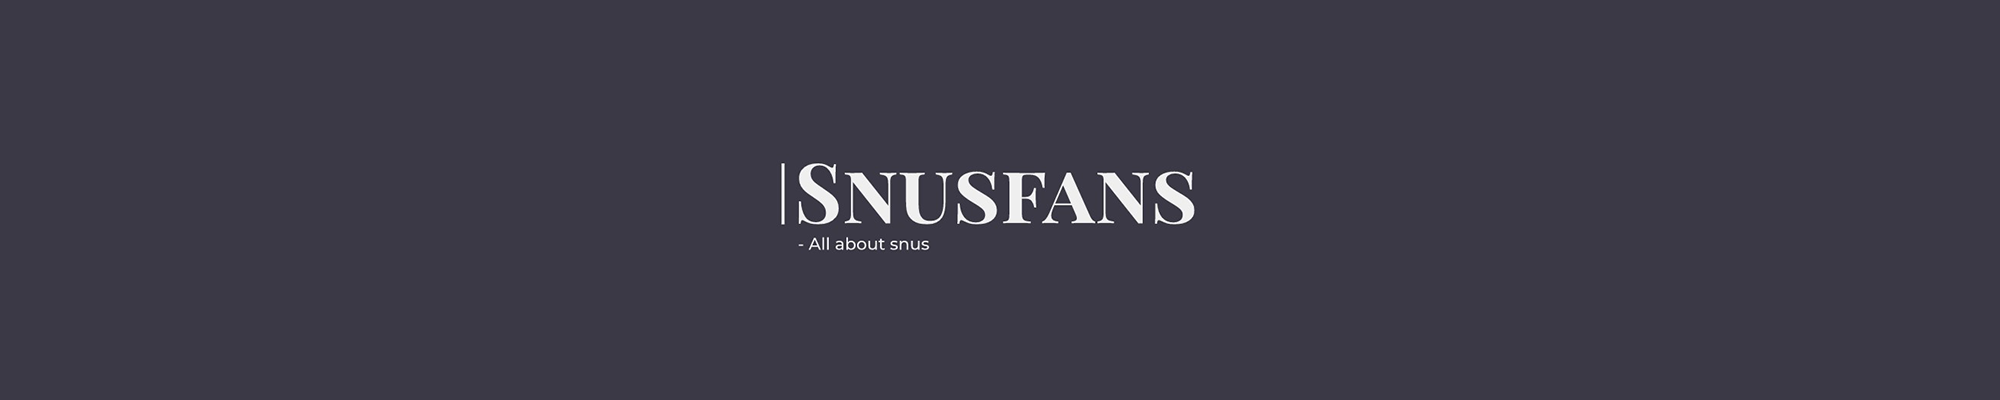 Snus fans – reviews on snus and nicotine pouches